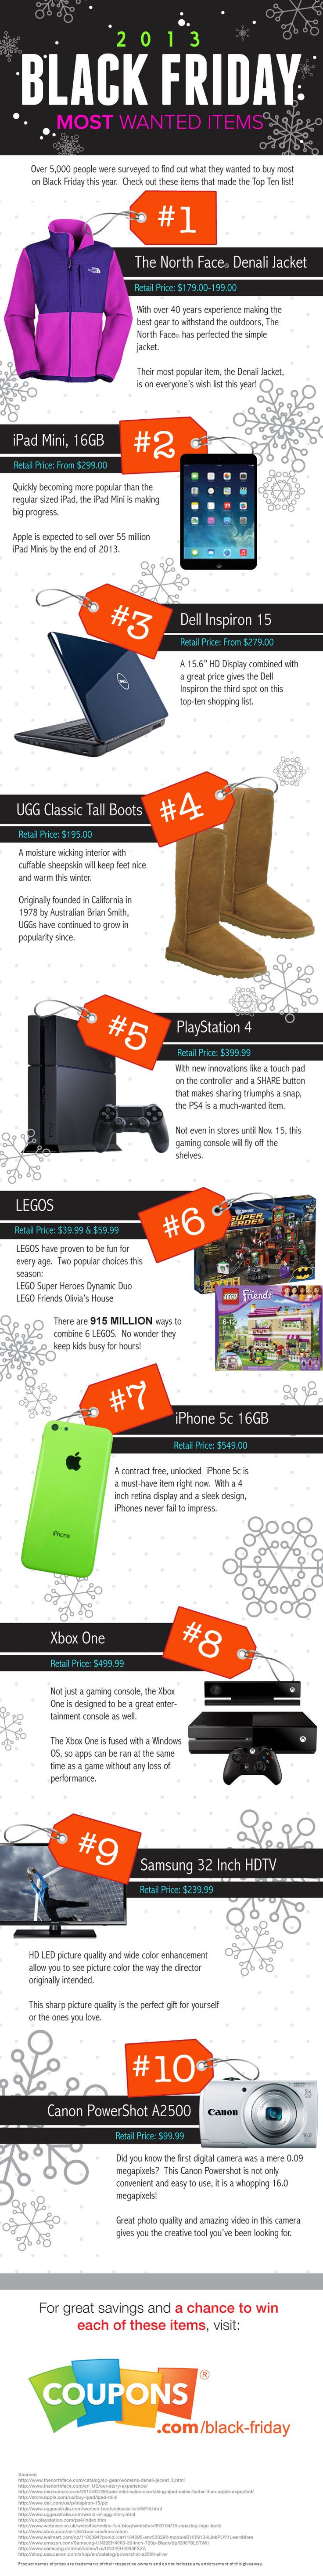 Black Friday 2013 Infographic: Most Wanted Items - Coupons.com Blog